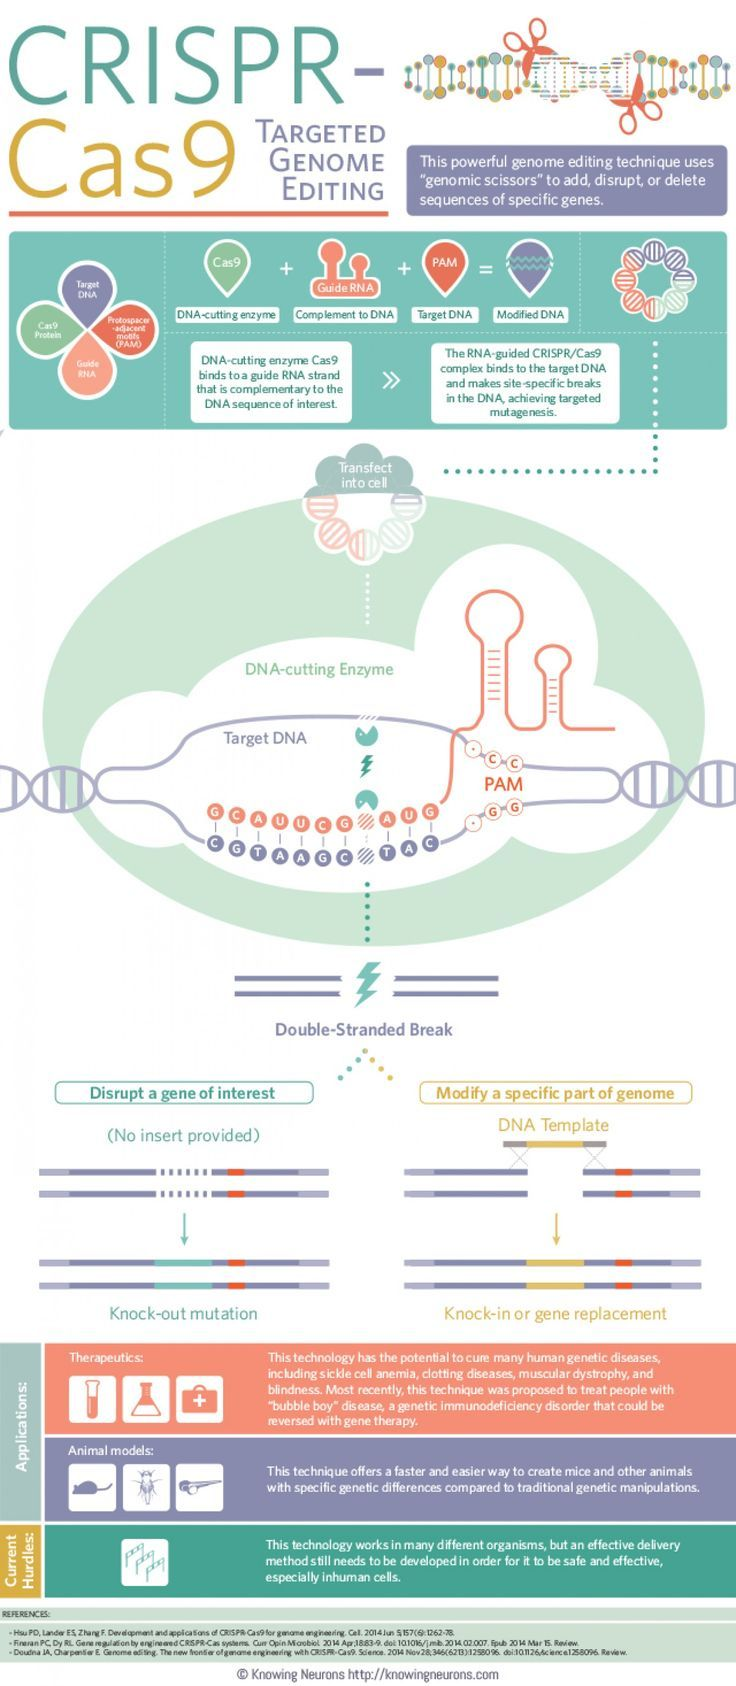 Application Of Crispr In Medicine